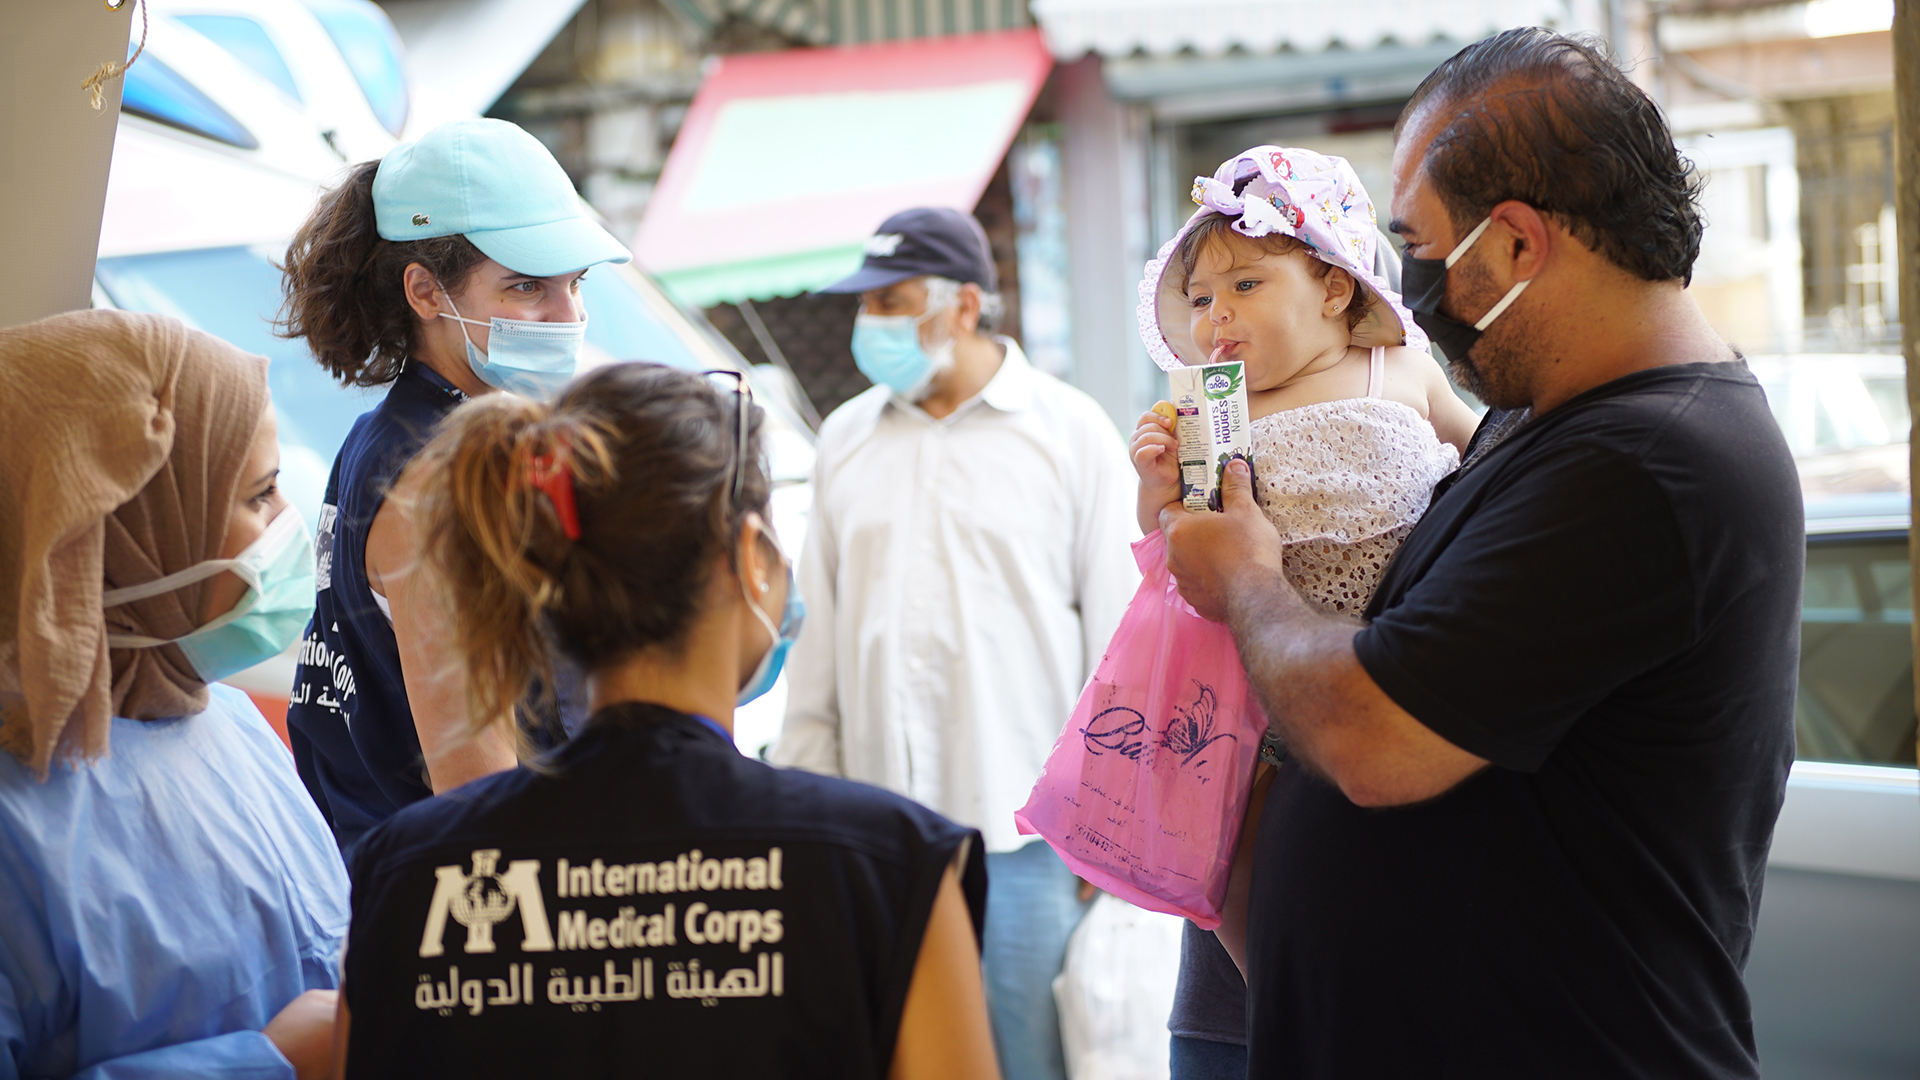 Just days after the port explosion that ripped through Beirut, International Medical Corps deployed a Mobile Medical Health Unit in Beirut to provide first aid to those affected.